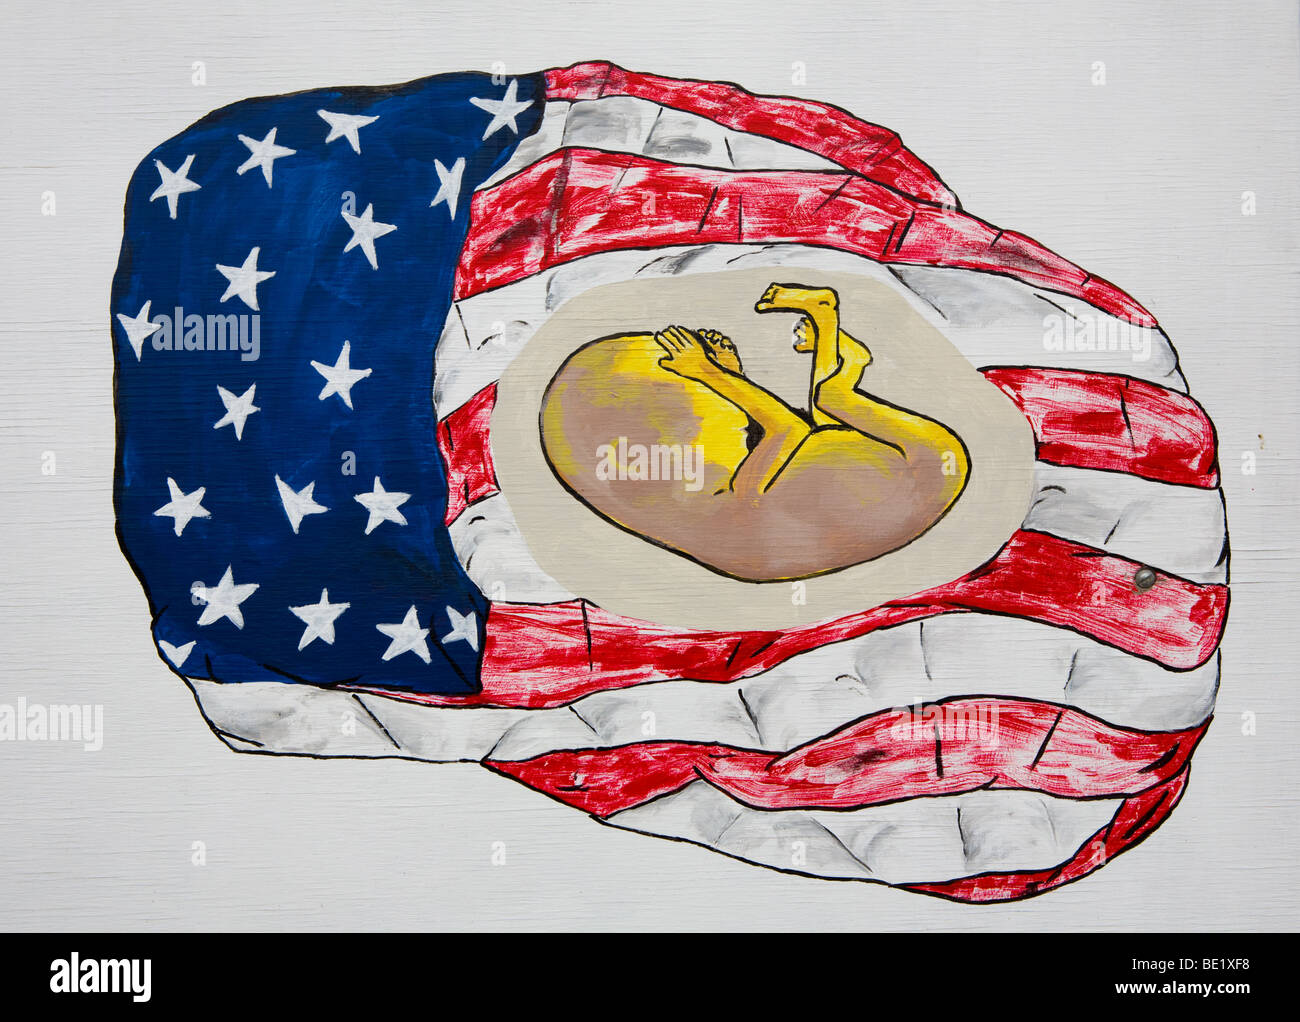 An anti abortion sign 'Save the Unborn' fetus in a flag in Enterprise Oregon - Stock Image